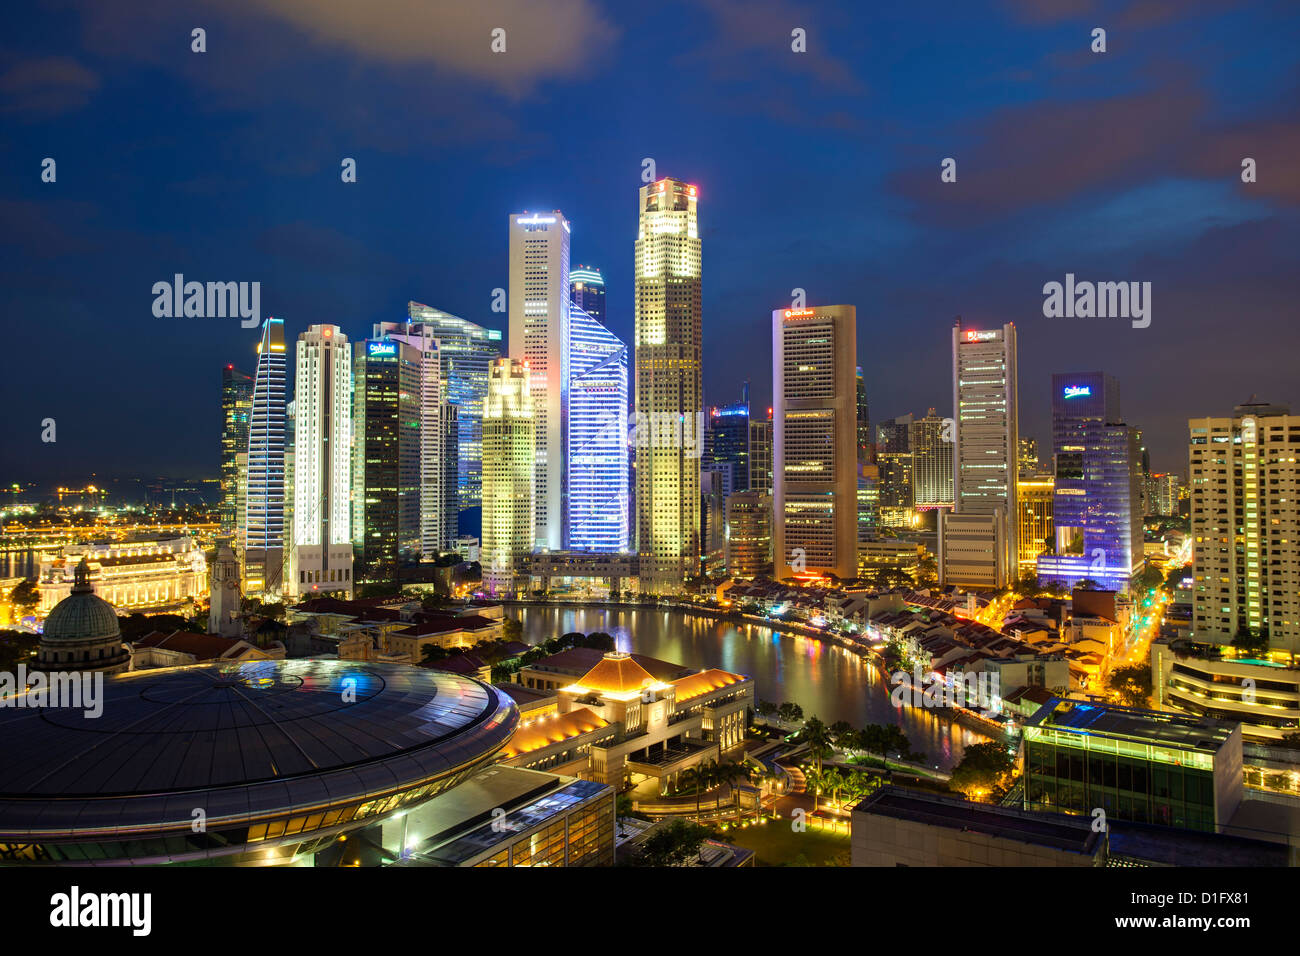 Skyline et le financial district au crépuscule, à Singapour, en Asie du Sud-Est, l'Asie Photo Stock